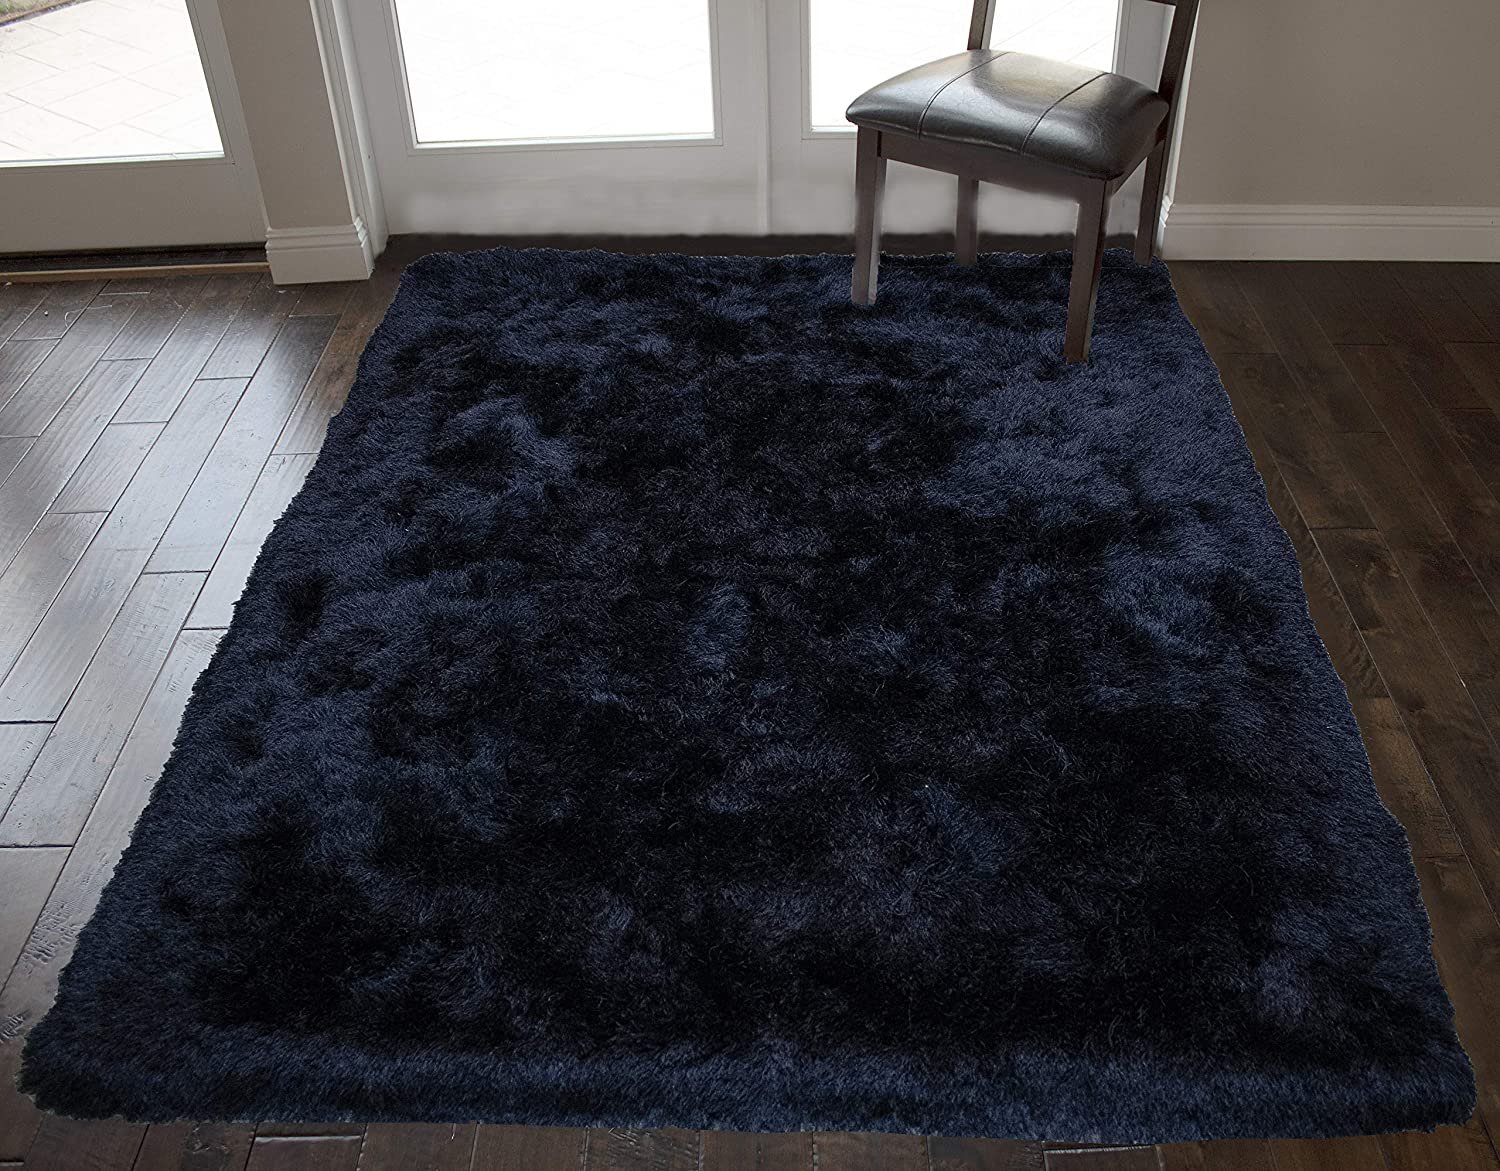 Amazon Com Black Crow Color 8x10 Feet Area Rug Carpet Rug Solid Soft Plush Pile Shag Shaggy Fuzzy Furry Modern Contemporary Decorative Designer Bedroom Living Room Hand Woven Non Slip Canvas Backing Kitchen Dining